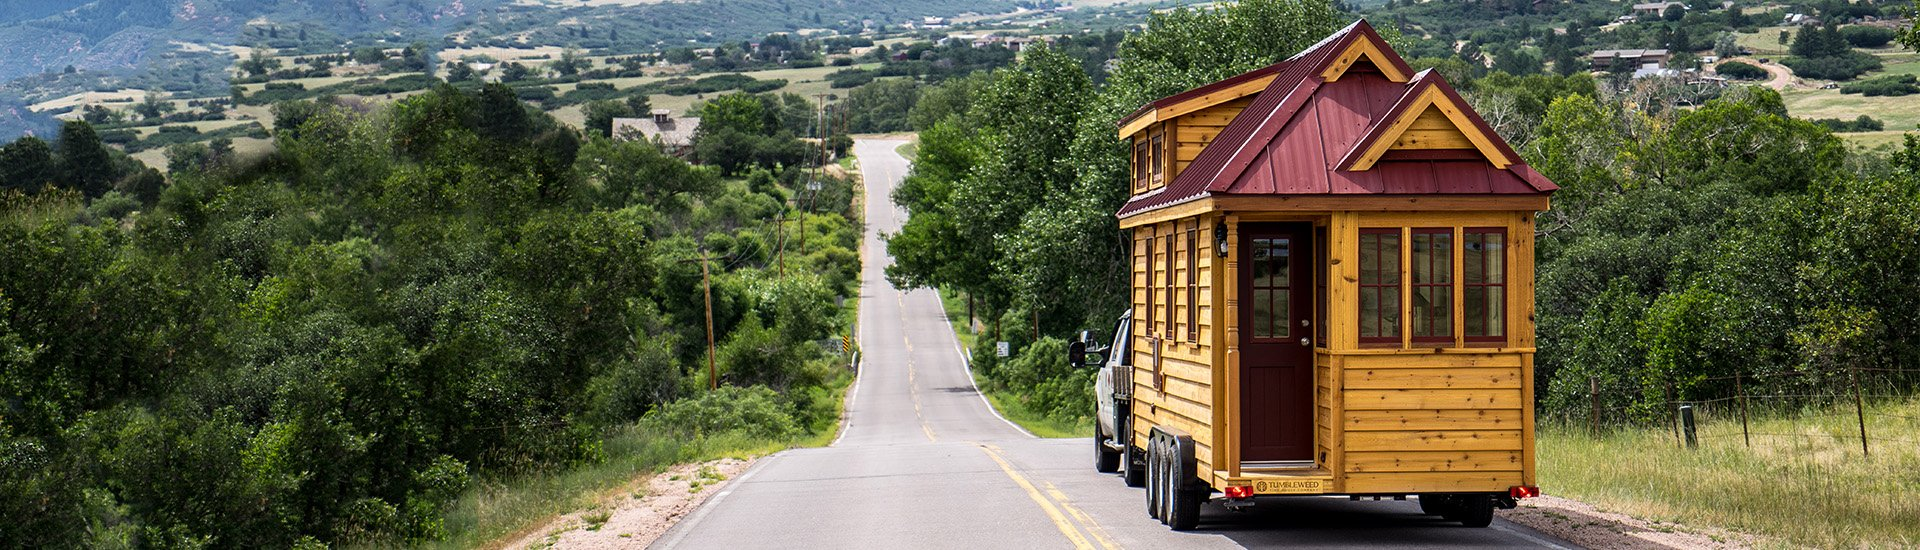 Tumbleweed Tiny House Factory Colorado Springs CO Tumbleweed